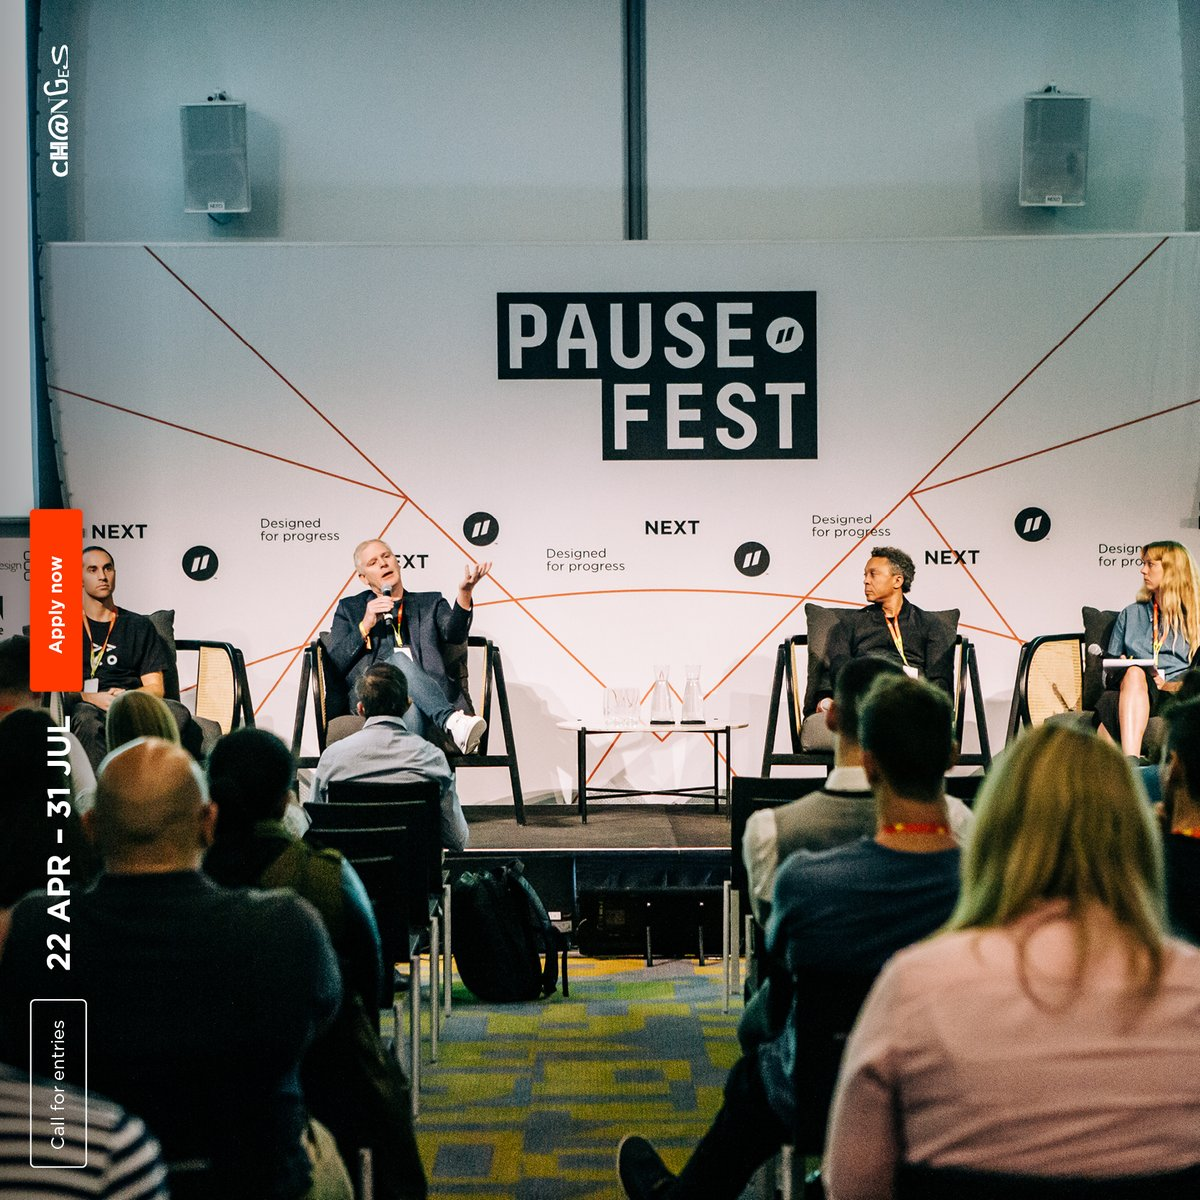 'Get the world moving through Sports Tech' was the session hosted by @IdaBjerga, MD & Co-founder, @NoiseStudioCo & @NordicSportsTech   Panelists were from PlaySport, @Awayco_, @PUMA.  You can submit your ideas for 2021:   #sports #future #innovation #apply